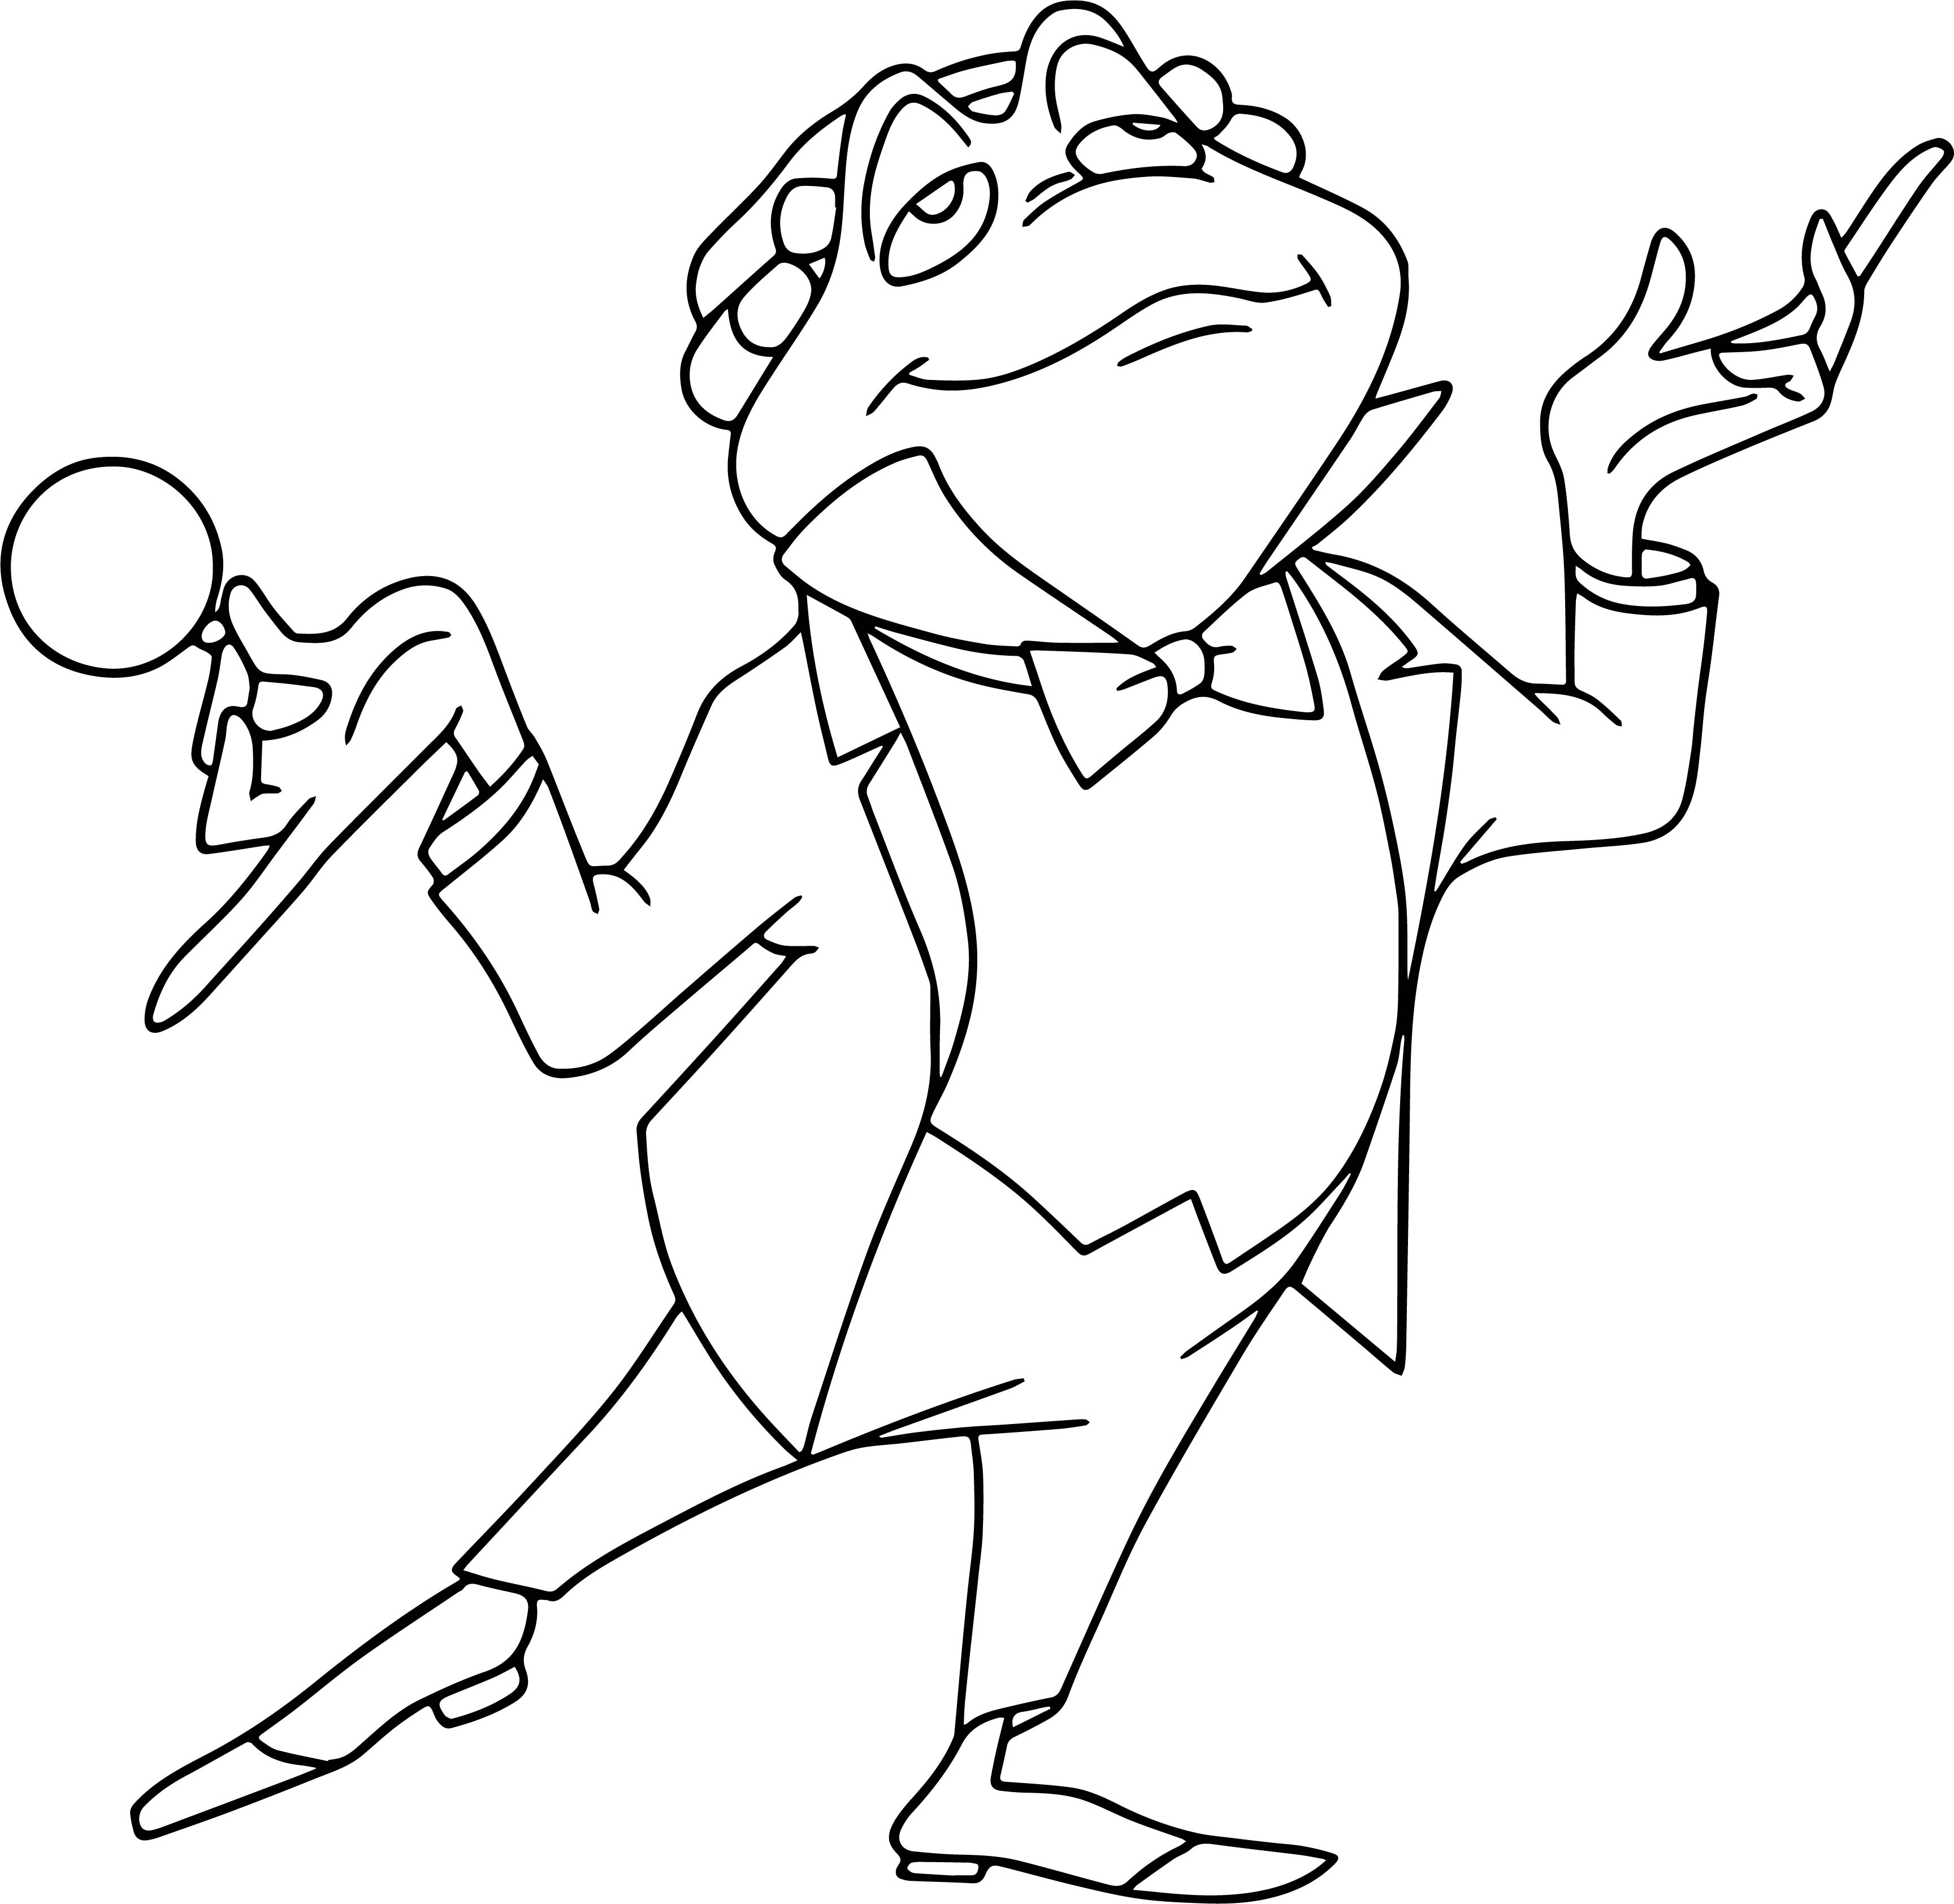 mrtoad coloring page